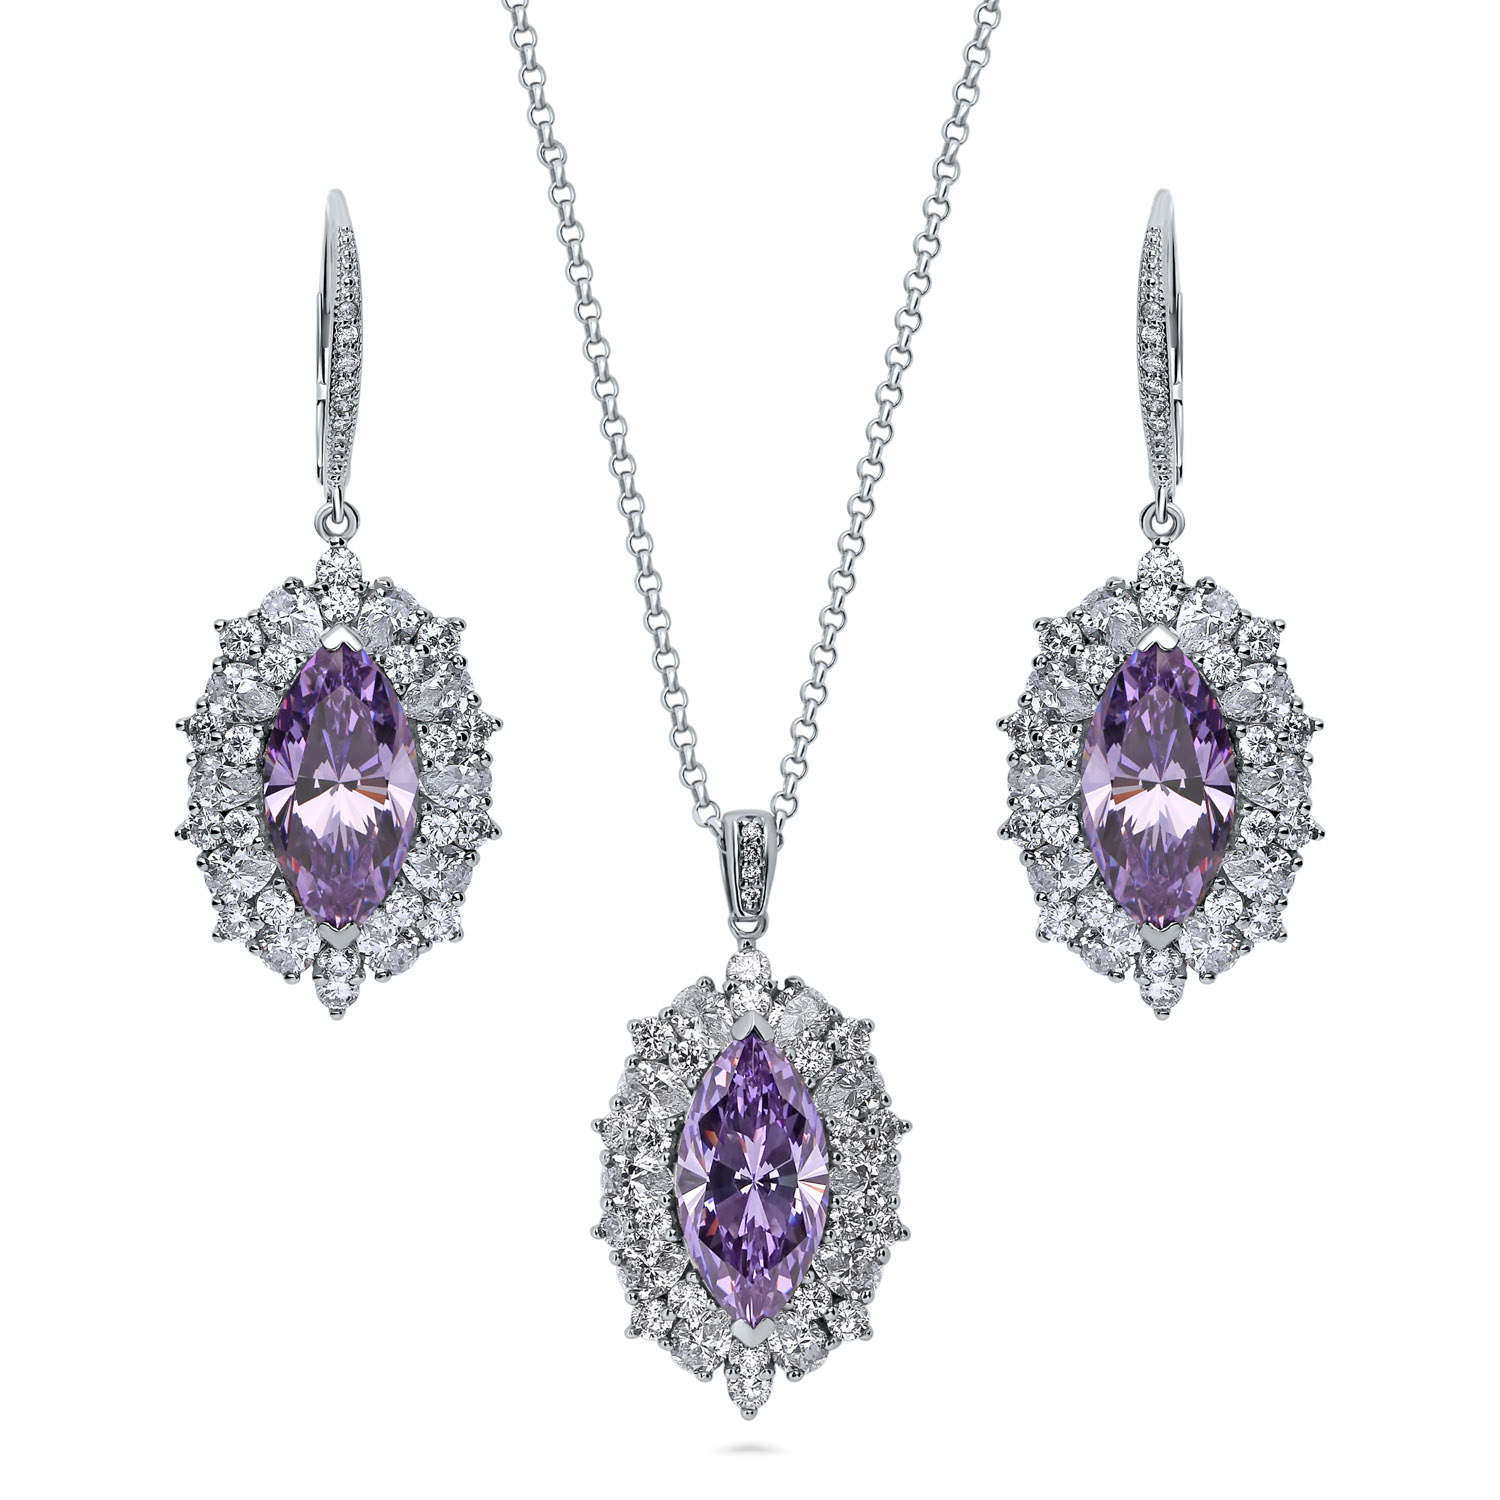 BERRICLE Rhodium Plated Sterling Silver Cubic Zirconia CZ Halo Necklace and Earrings Set